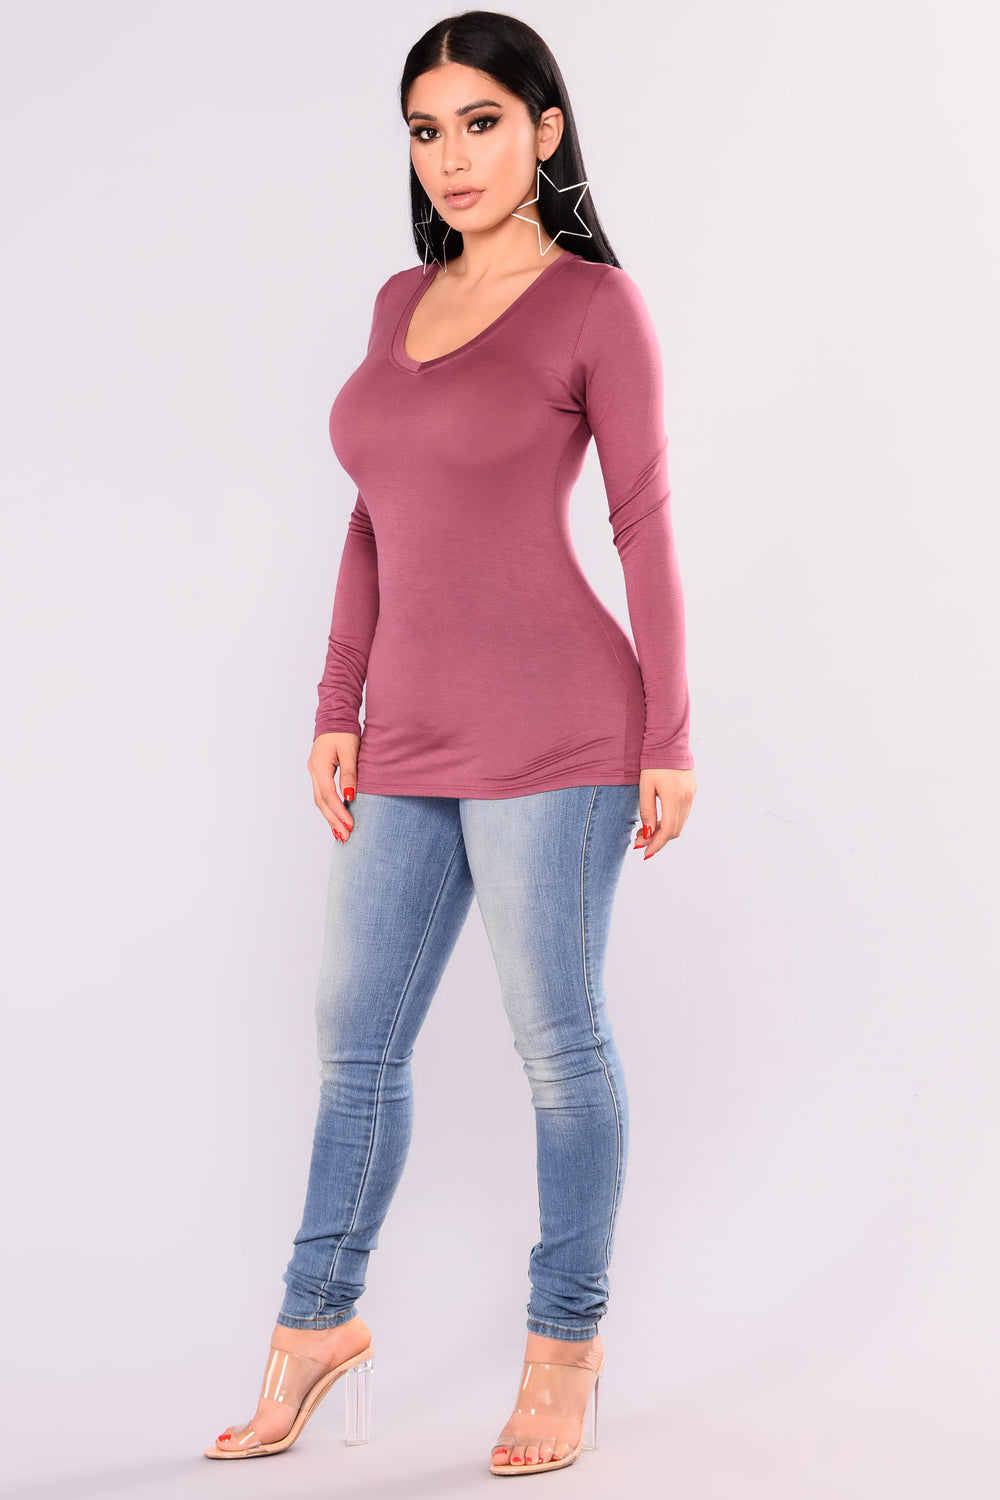 Basic Long Sleeve Tee - Pale Mauve